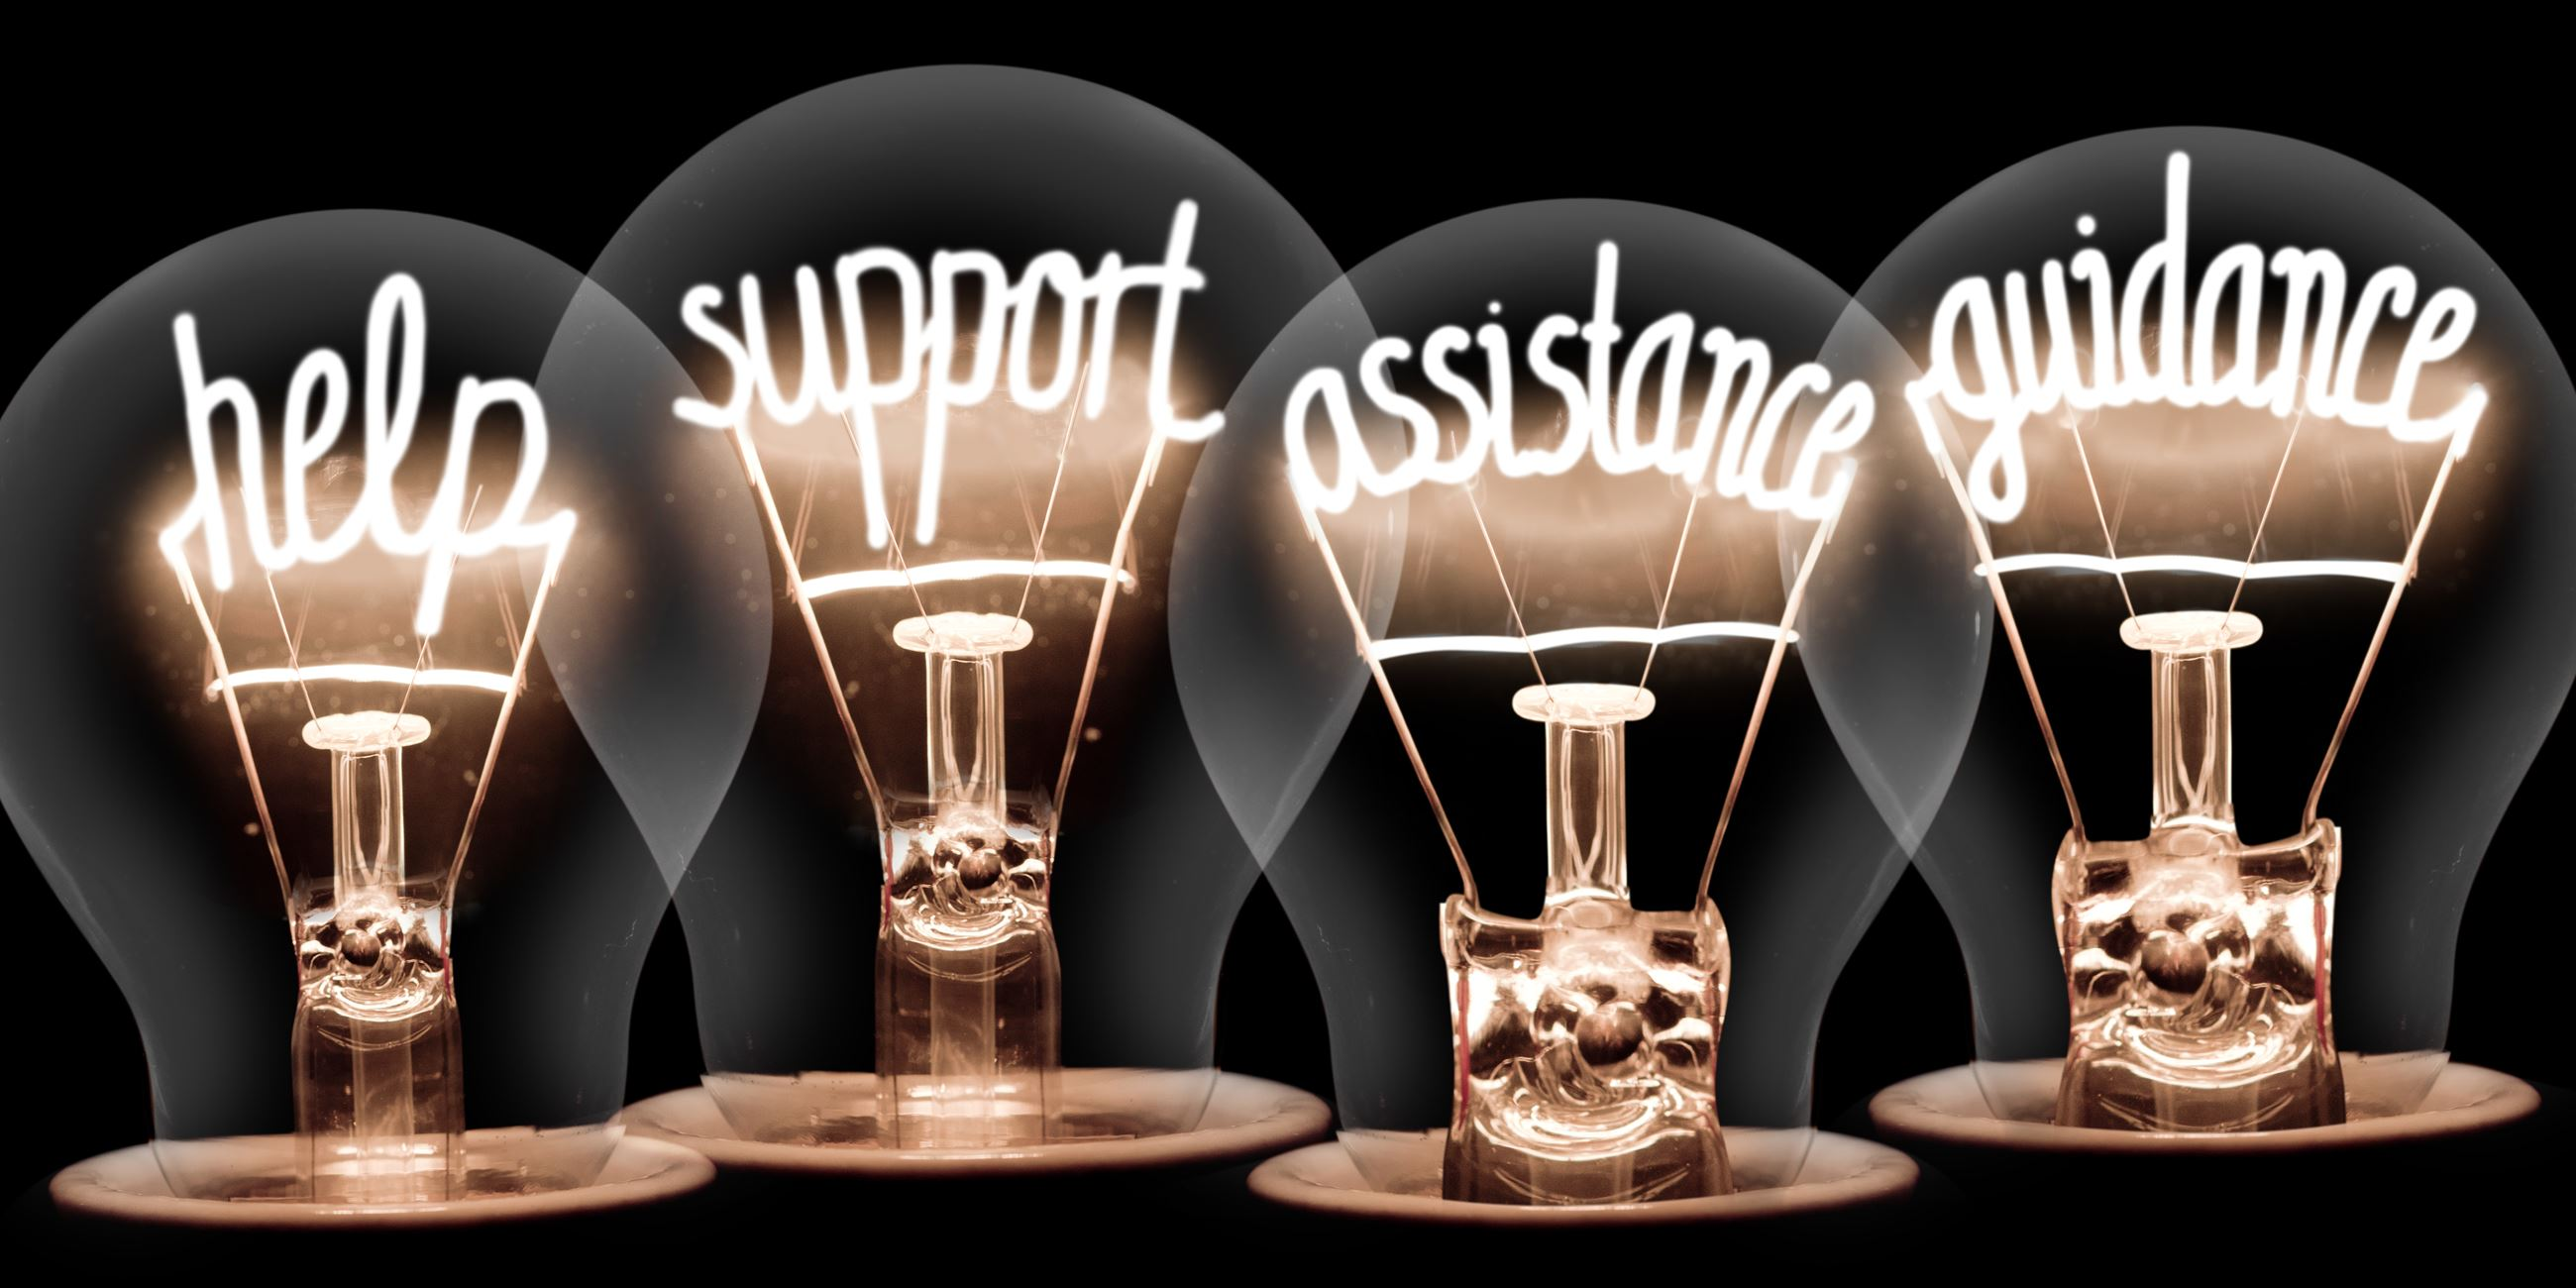 help support assistance guidance written on light bulbs